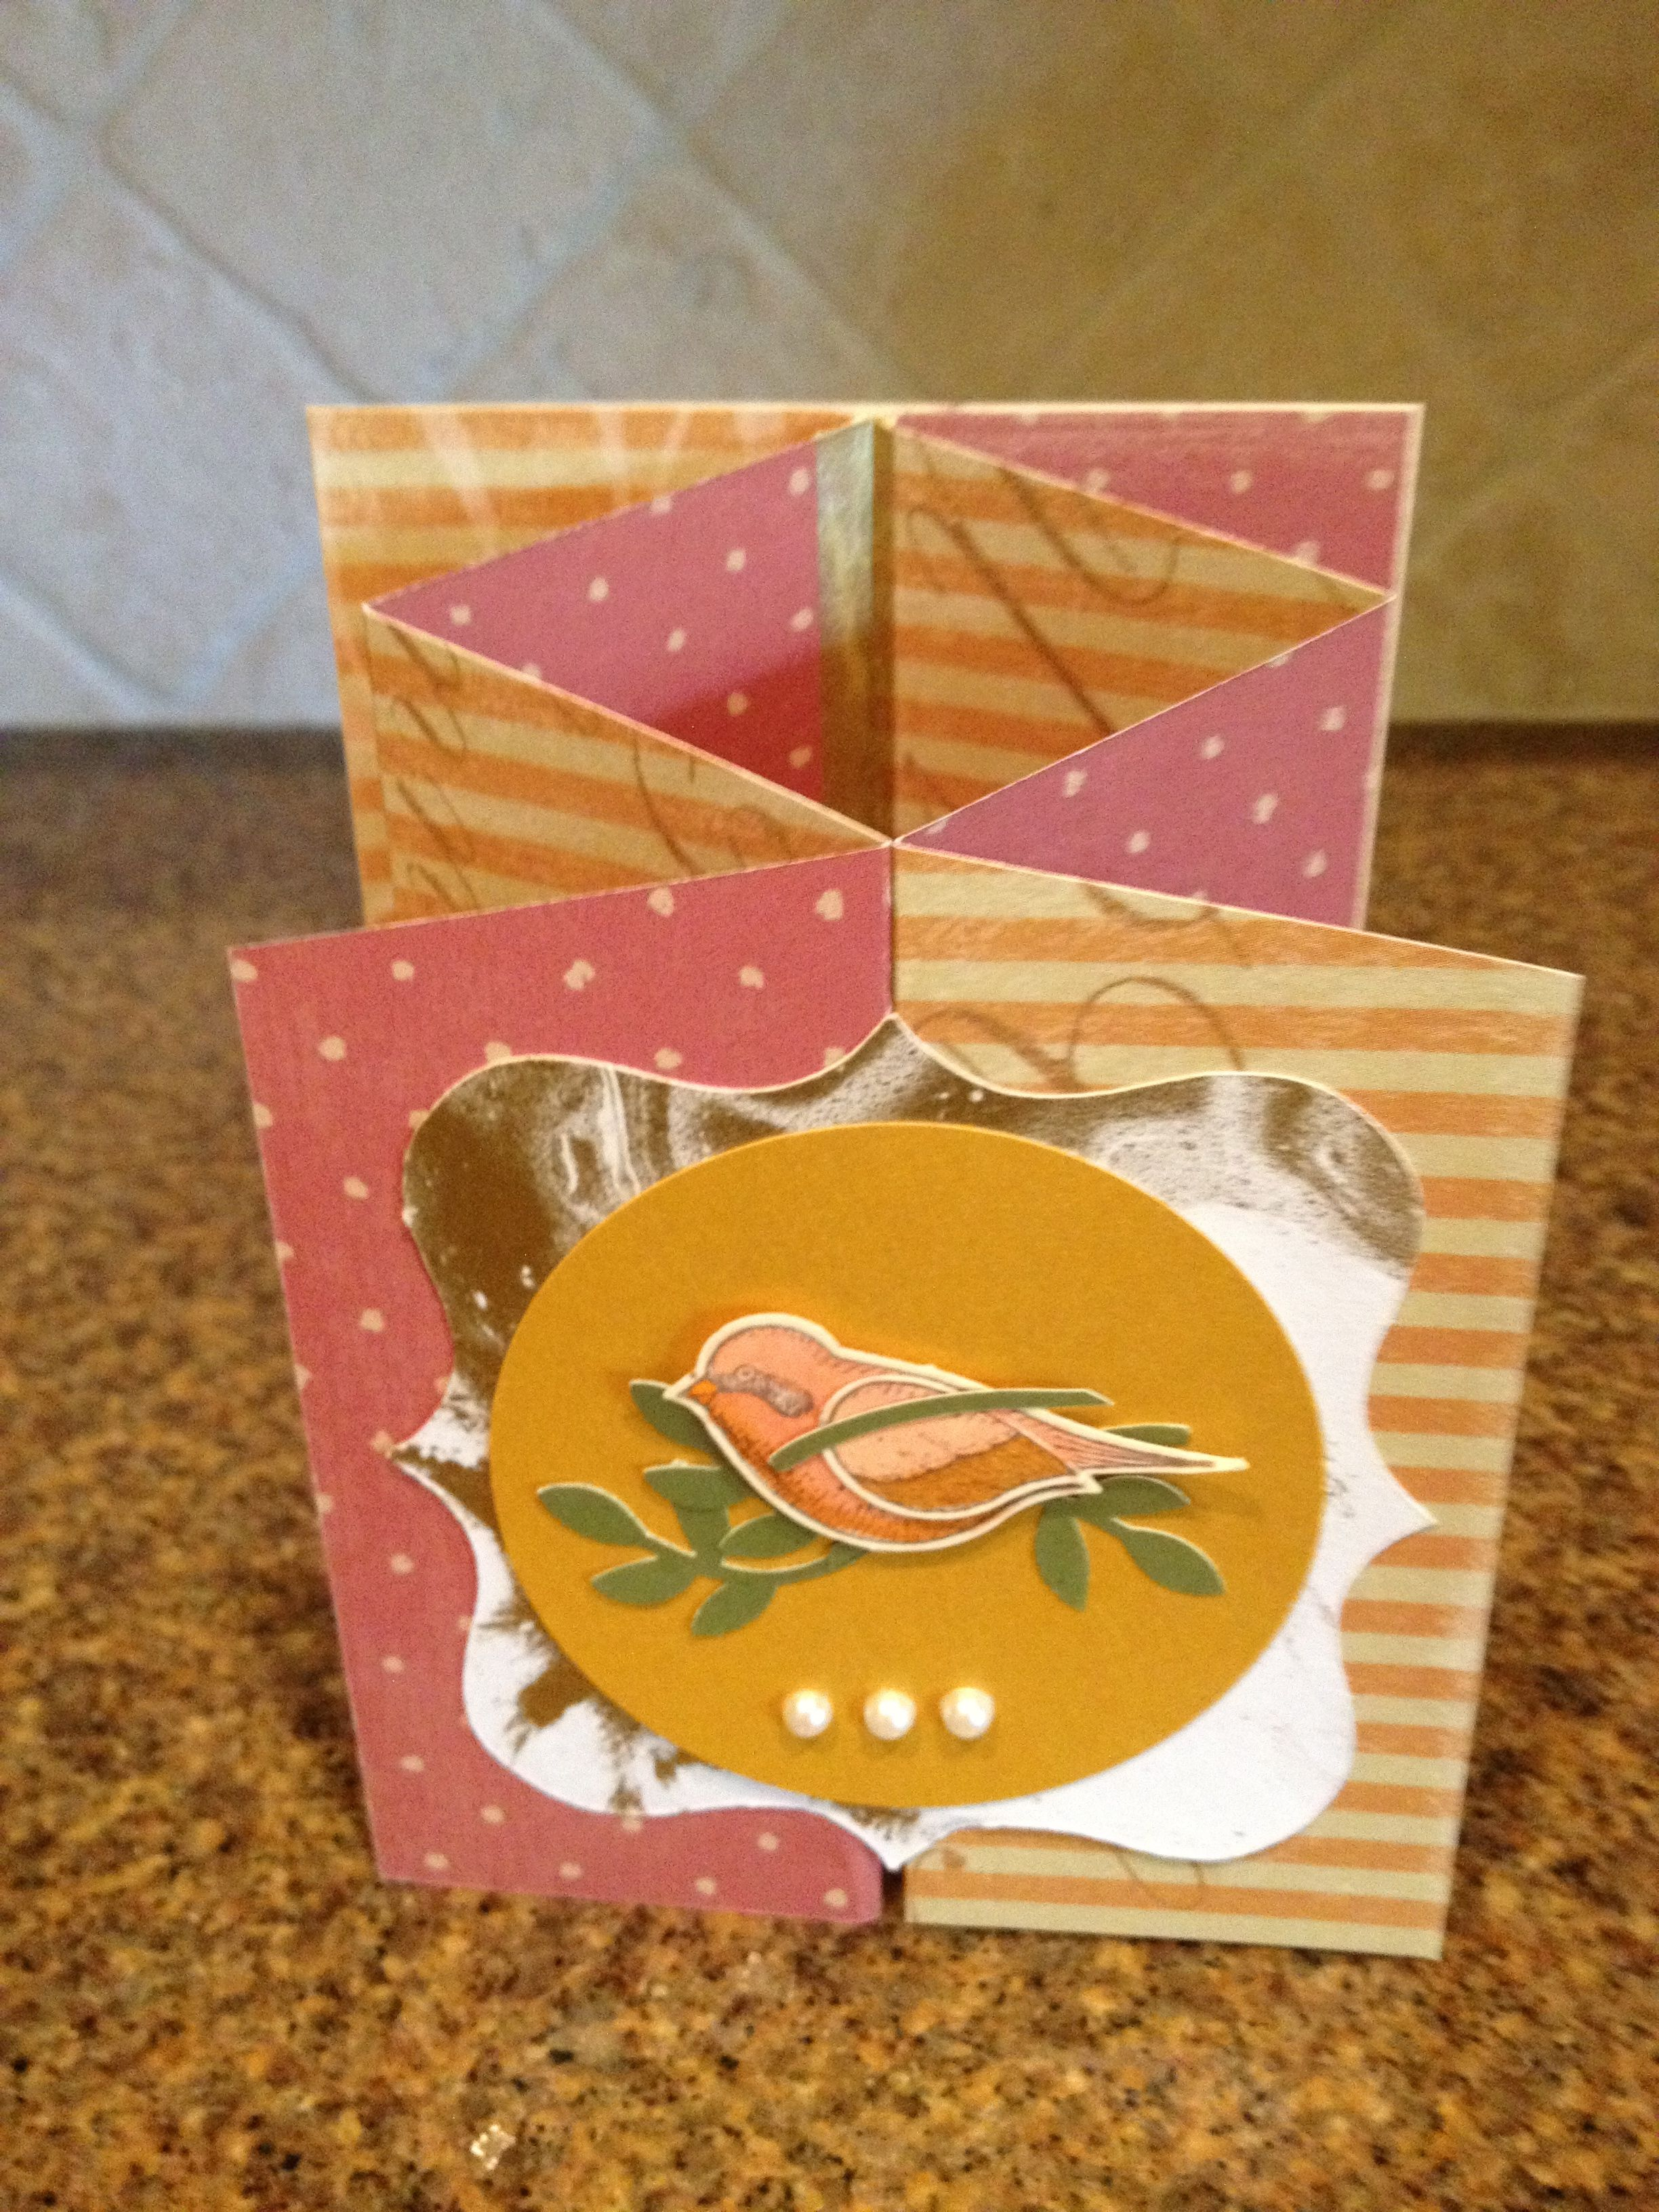 Accordion Fold Annalees Birthday Card By Candace Cubito Ccubito